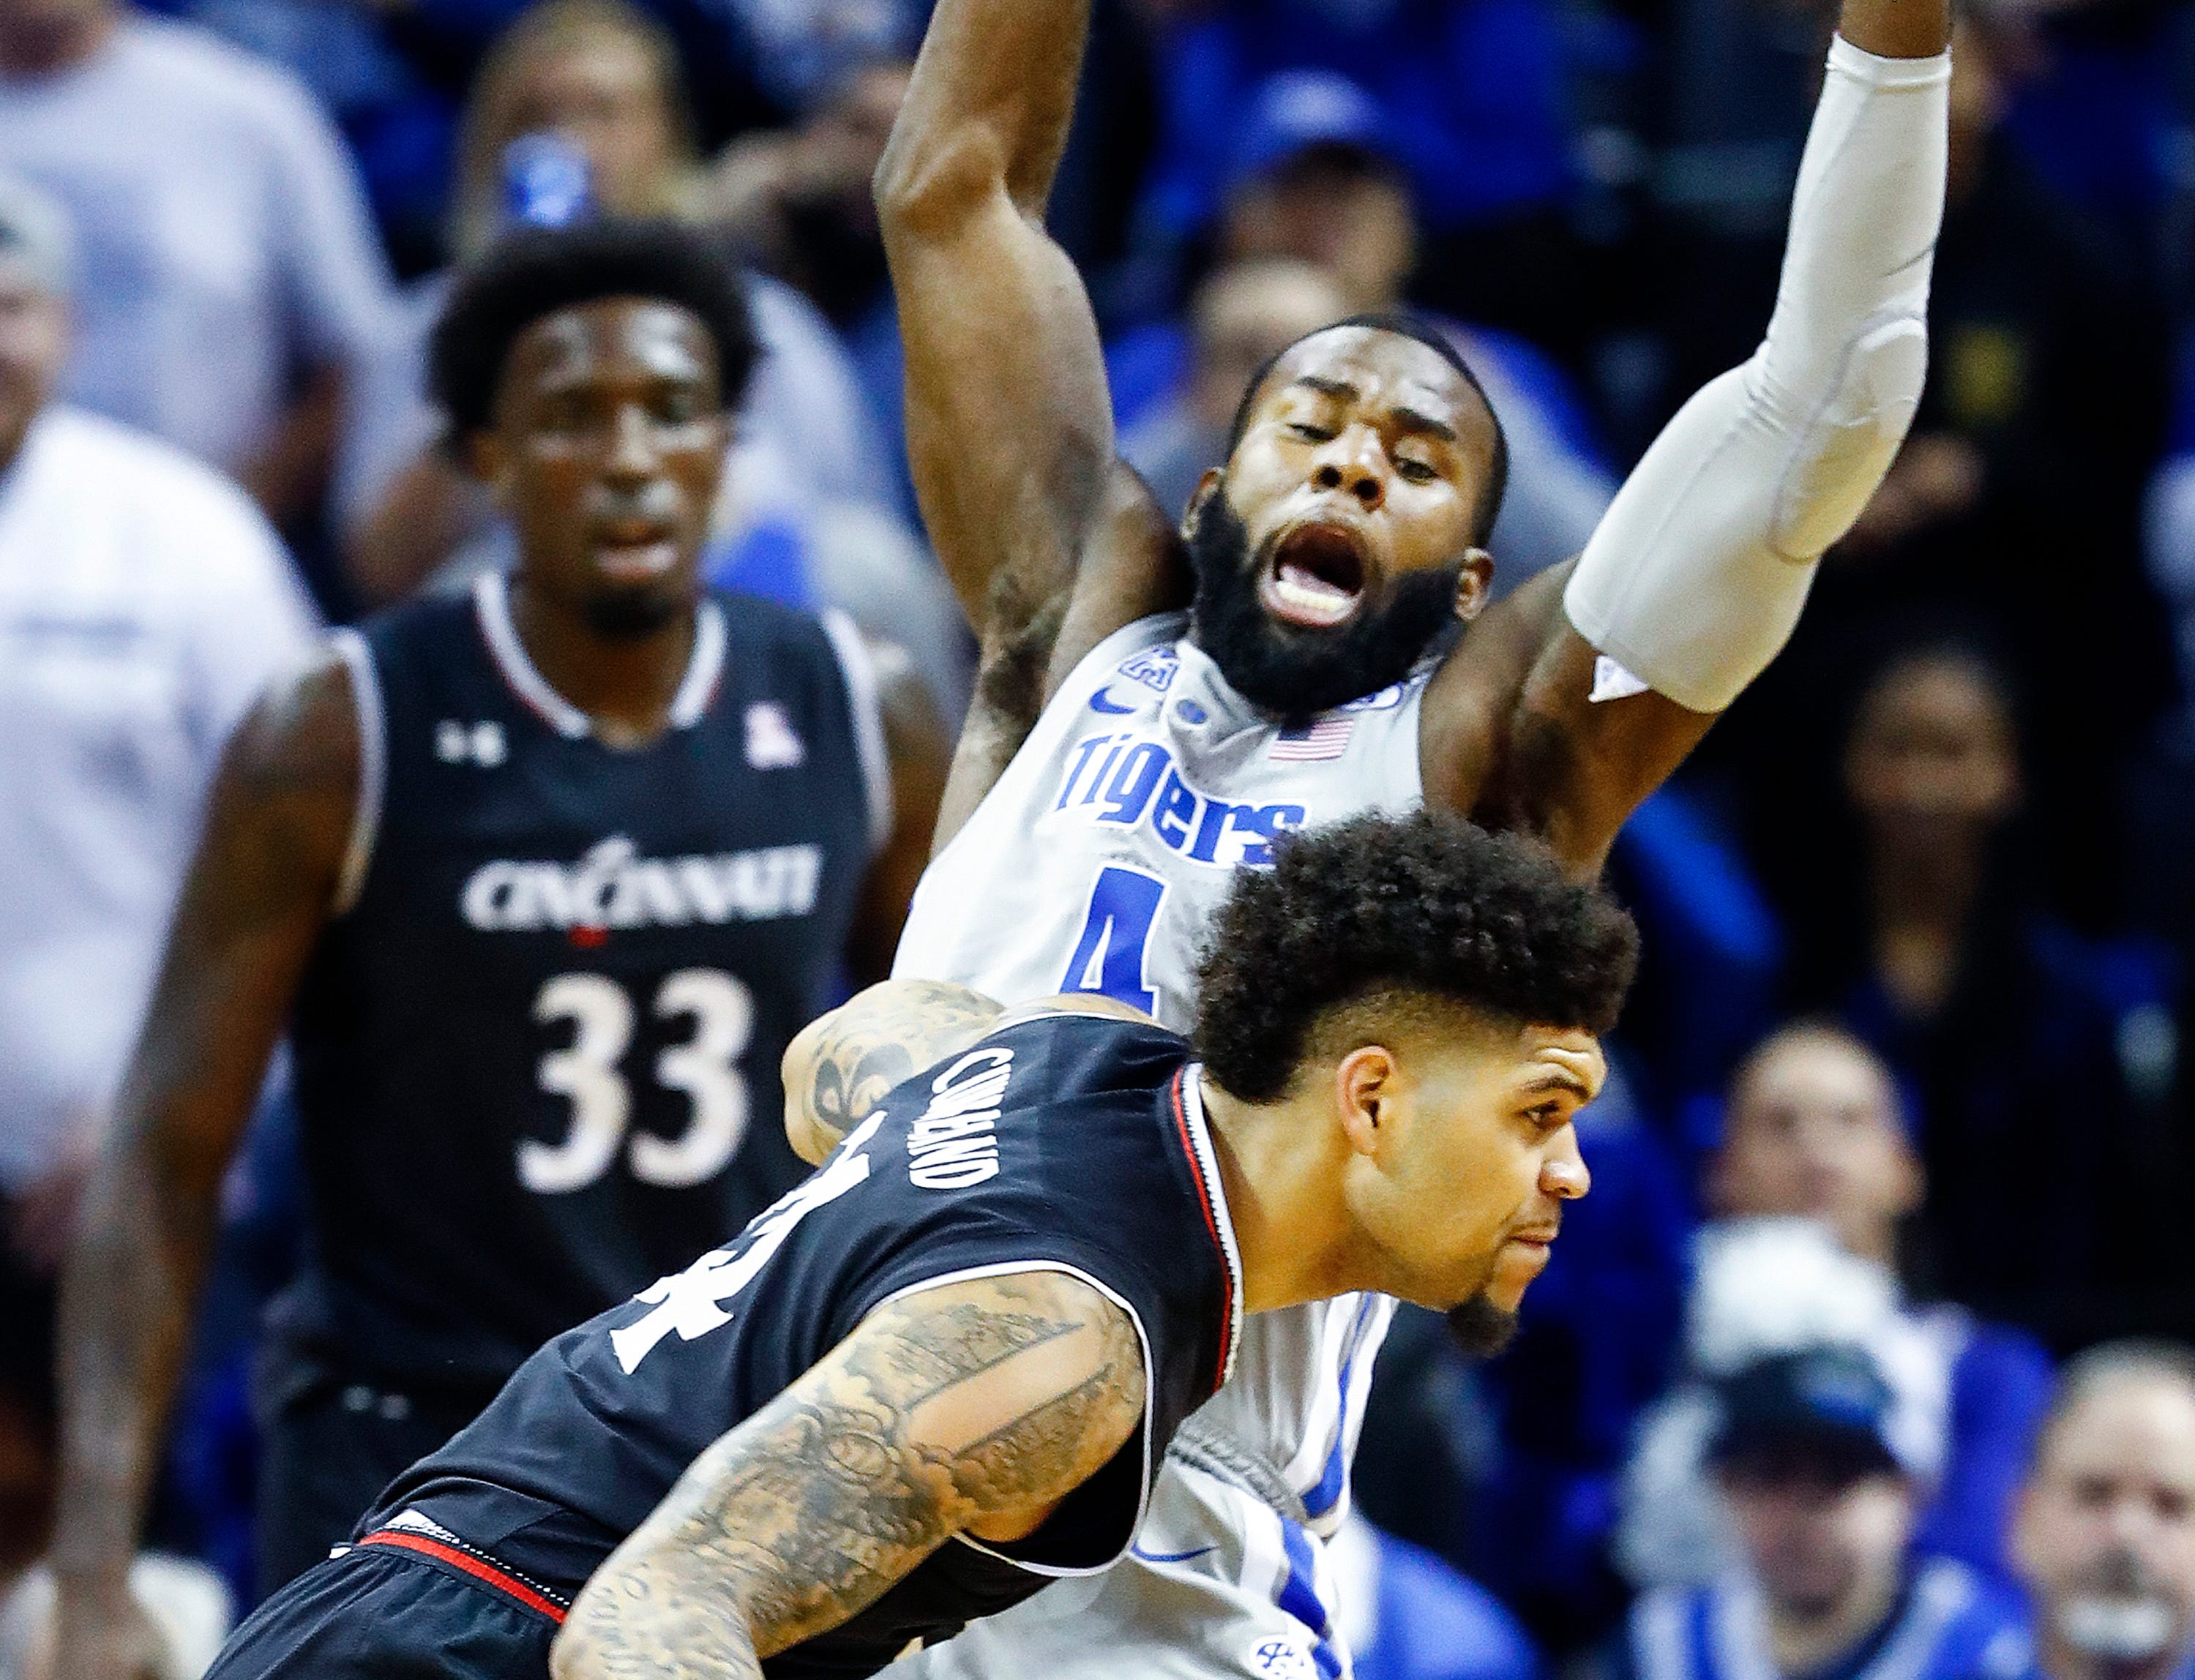 Memphis defender Raynere Thornton (back) applies defensive pressure to Cincinnati guard Jarron Cumberland (front) during action at the FedExForum, Thursday, February 7, 2019.